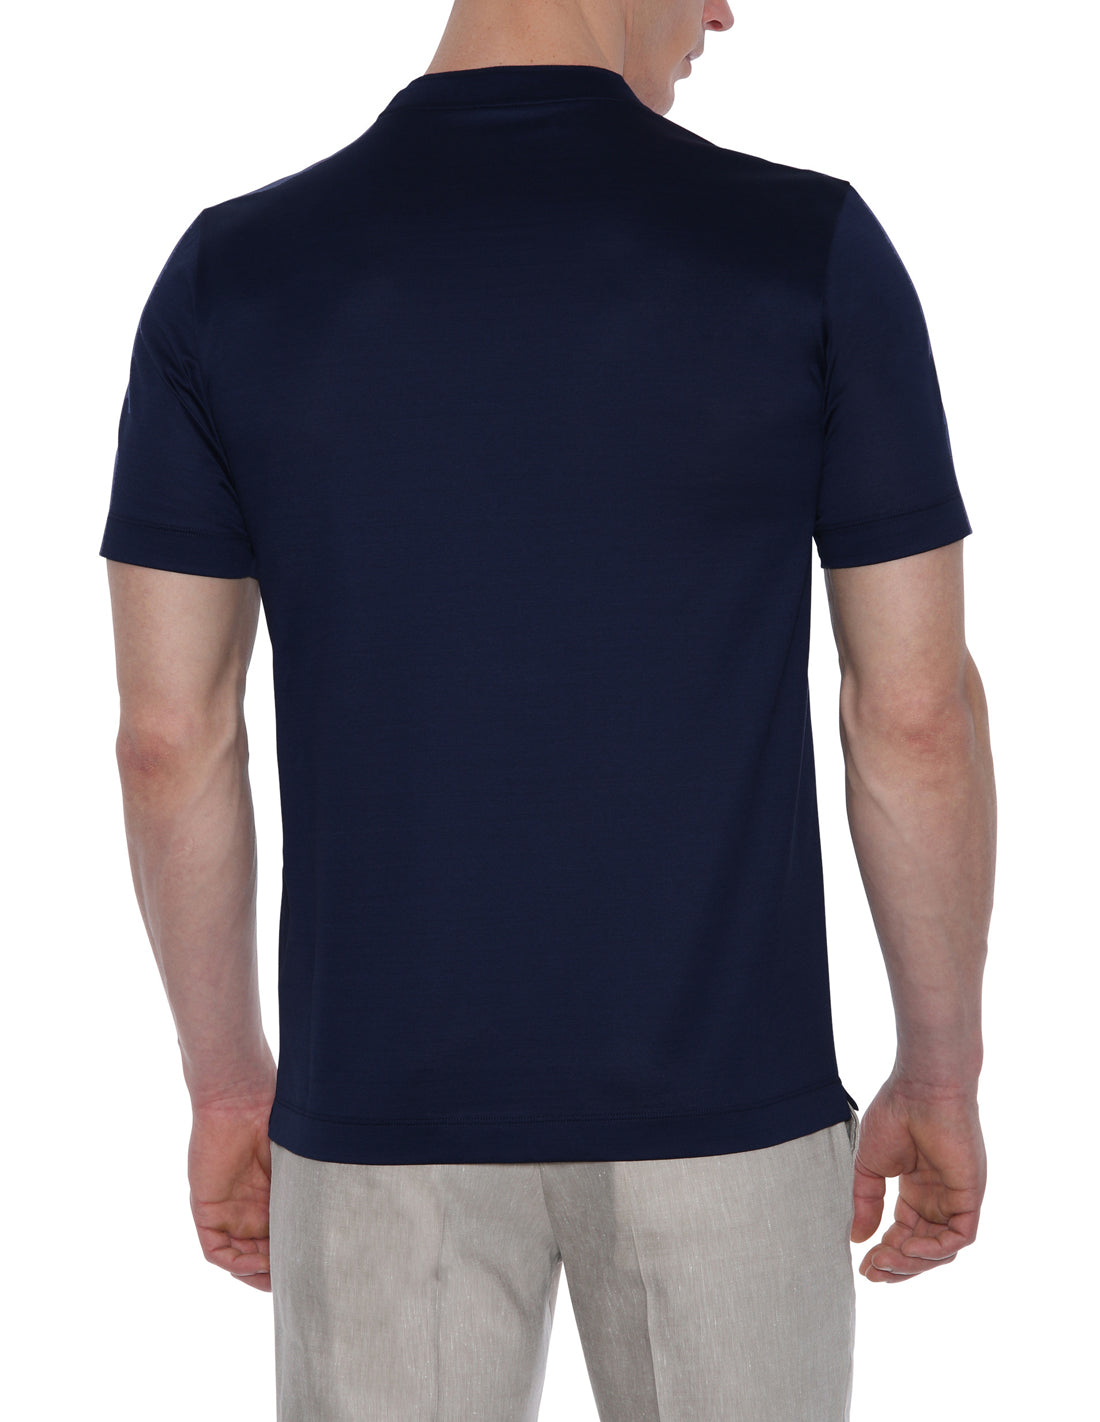 Canali - Navy Blue Pure Oxford Cotton T-Shirt T0540-MJ00370/300